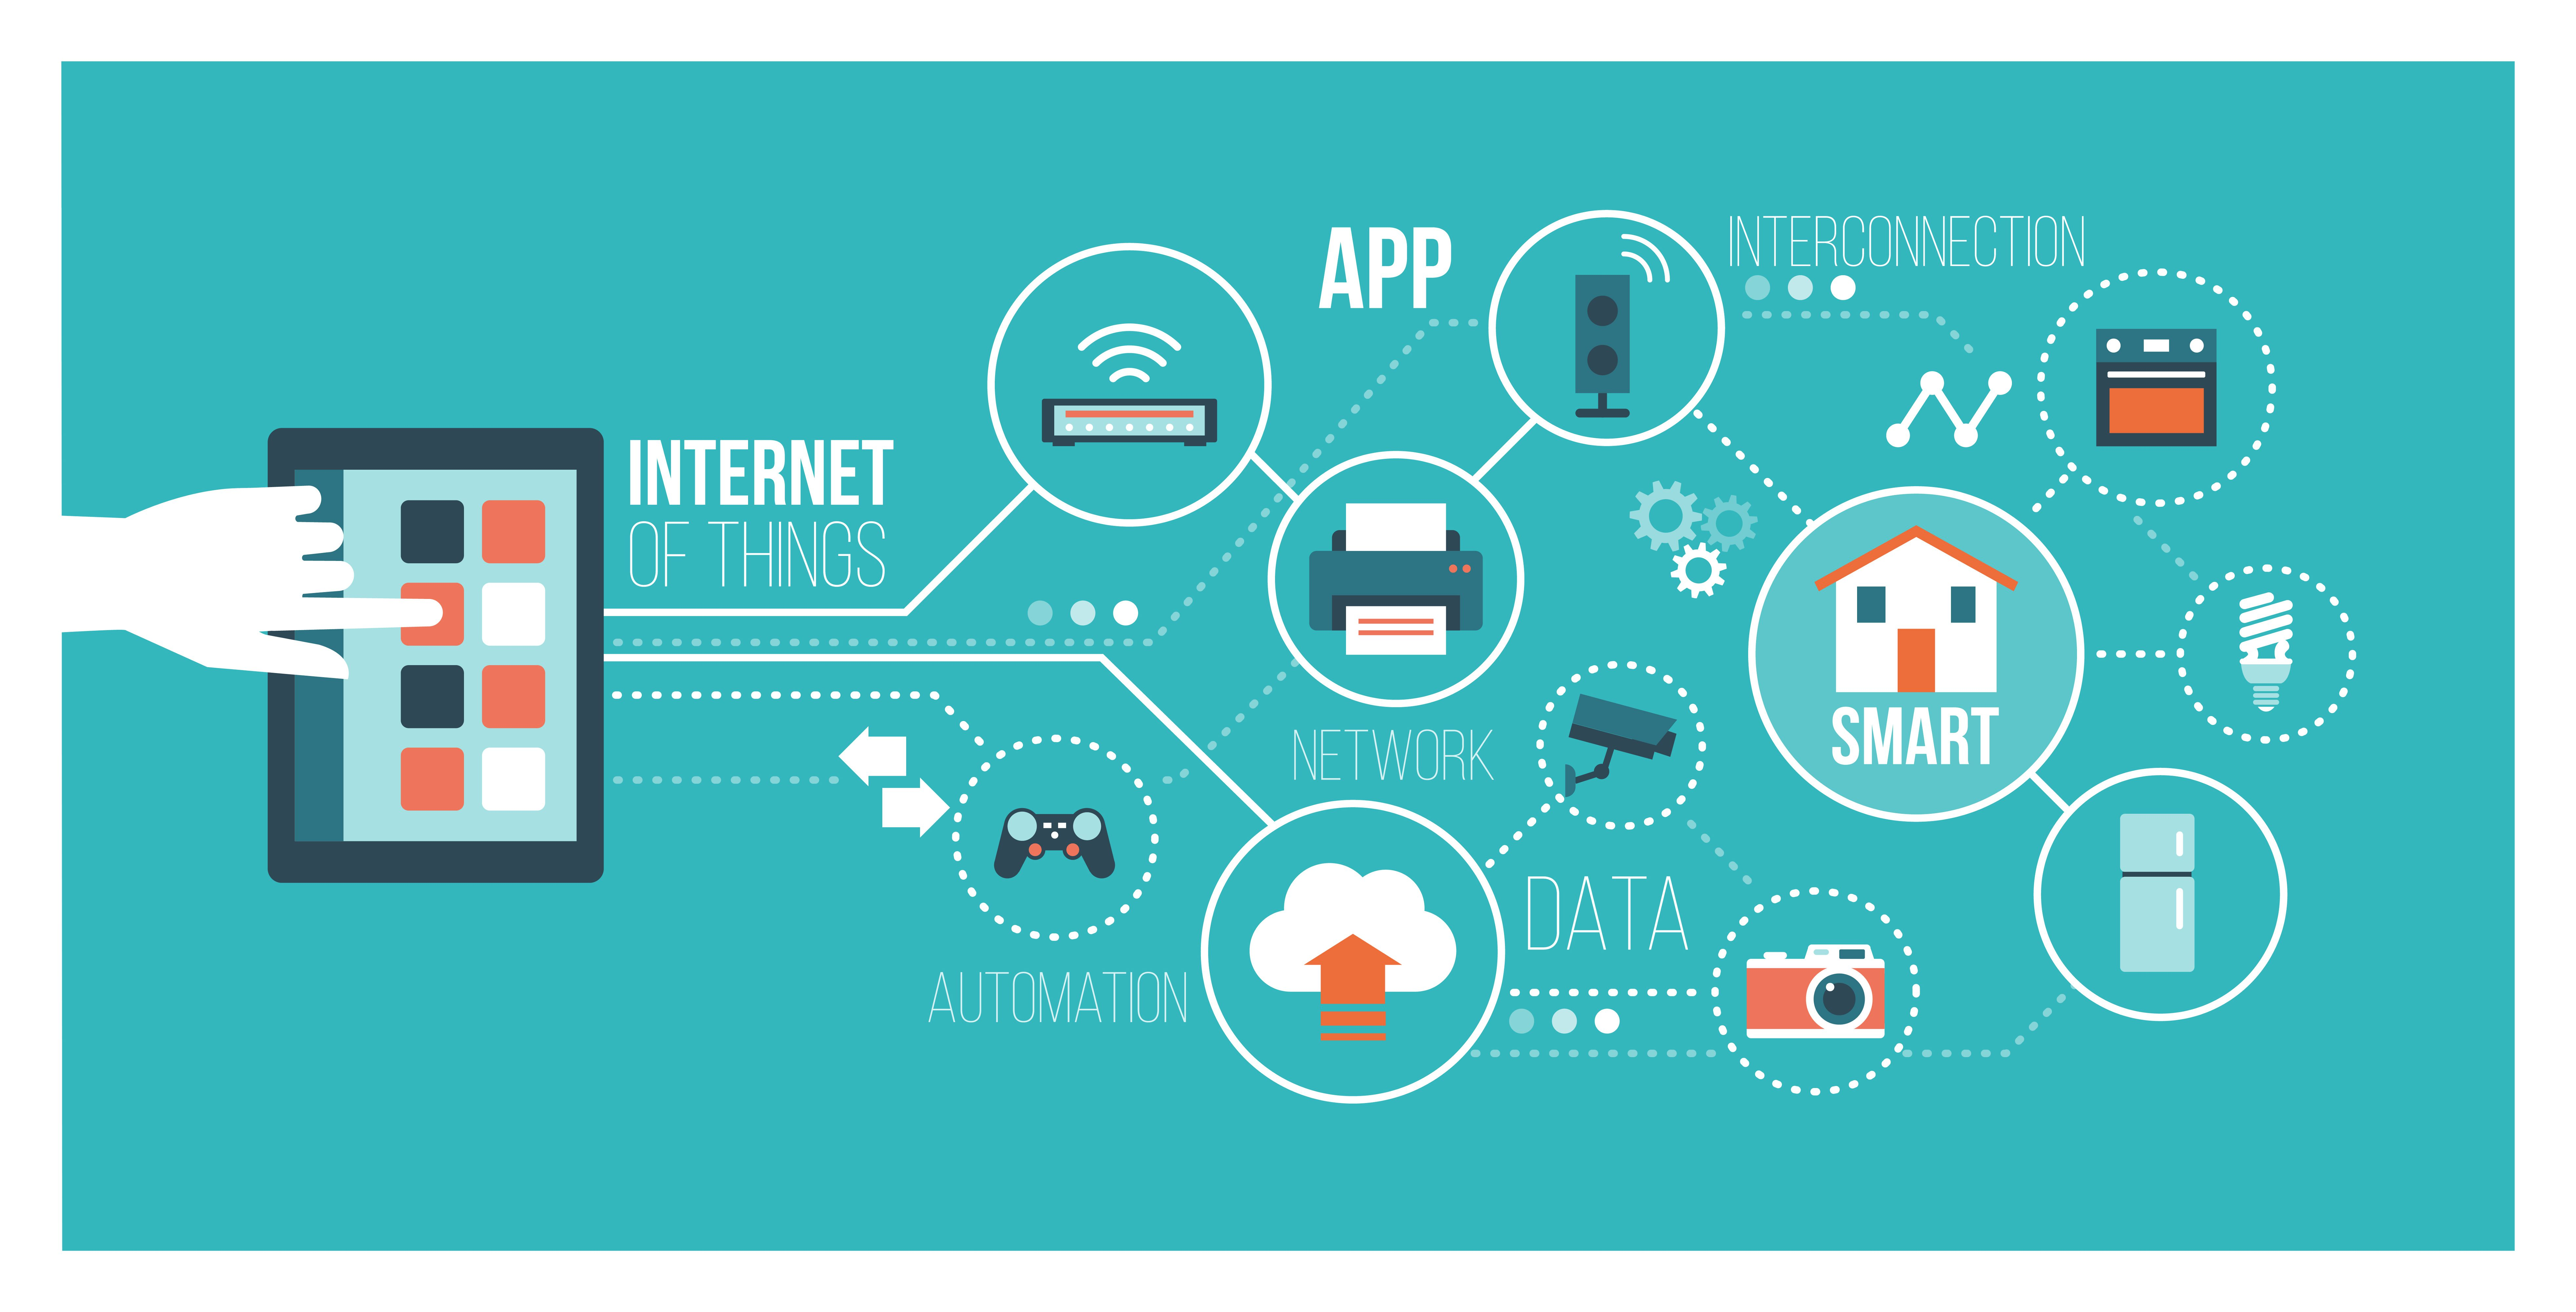 Internet of things - smart home